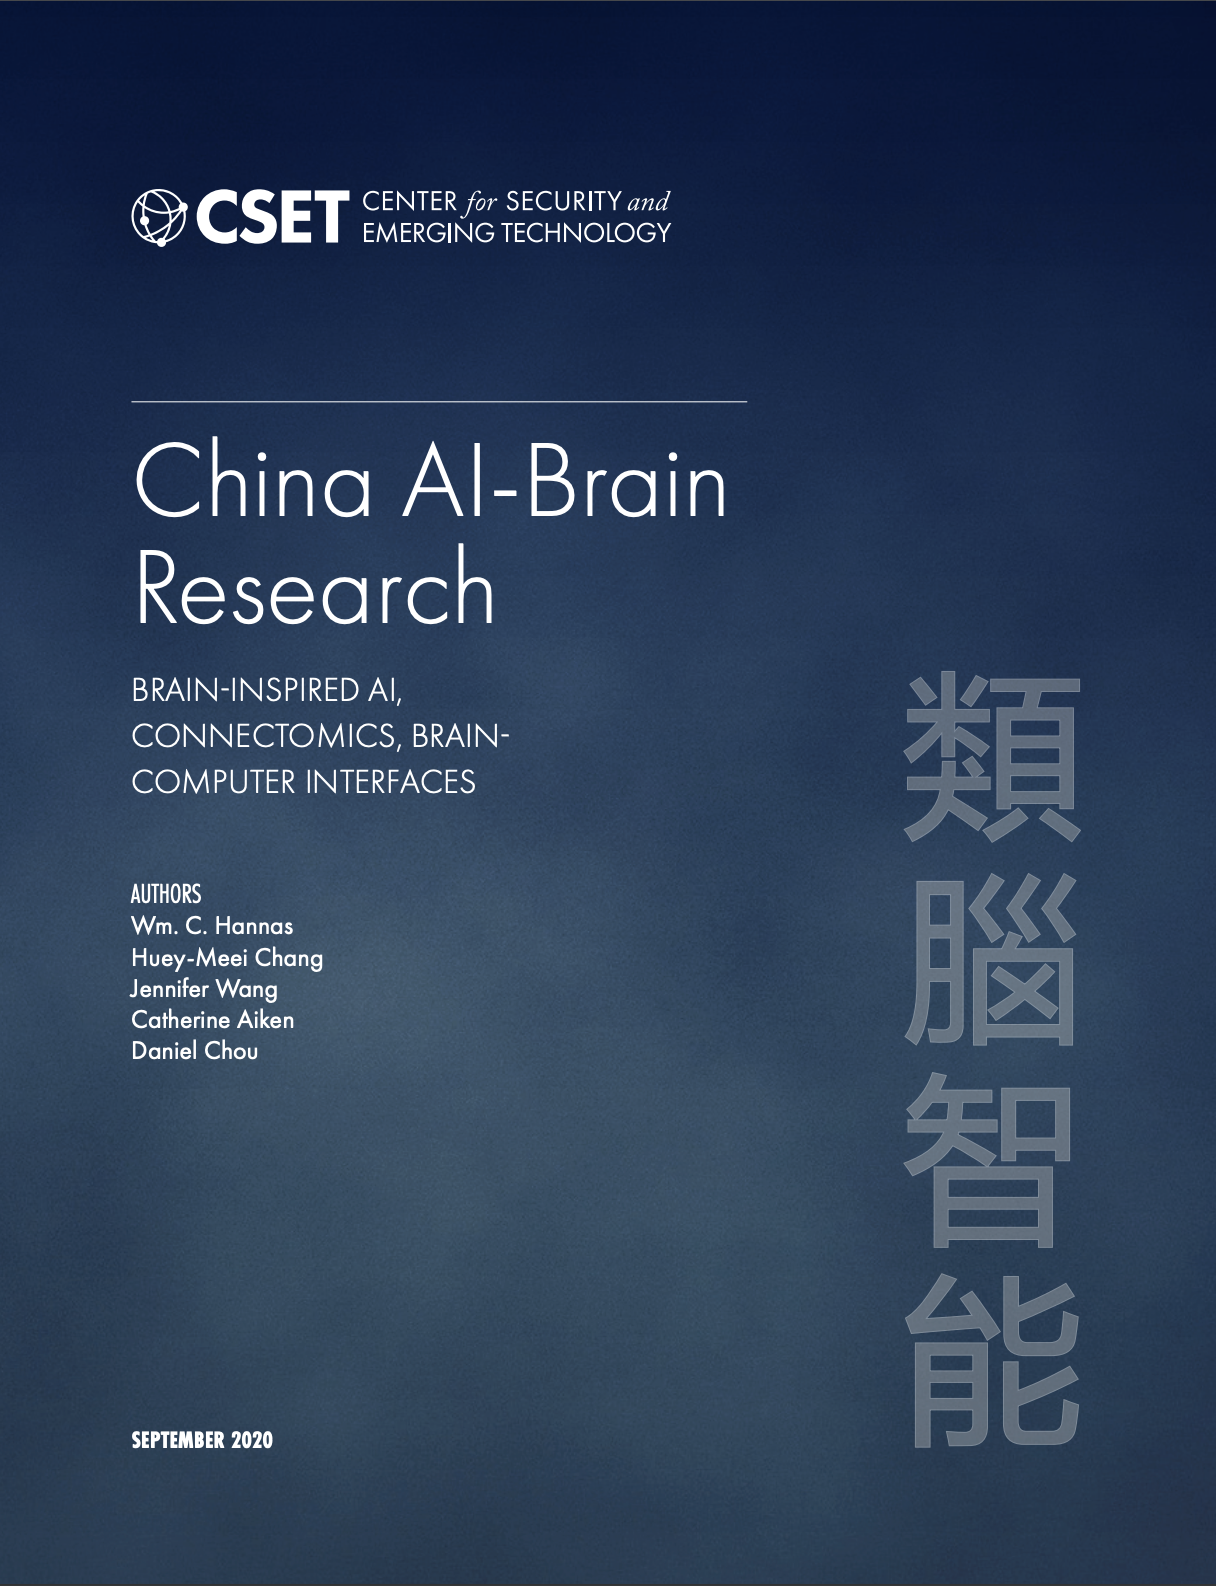 China AI-Brain Research Report Cover